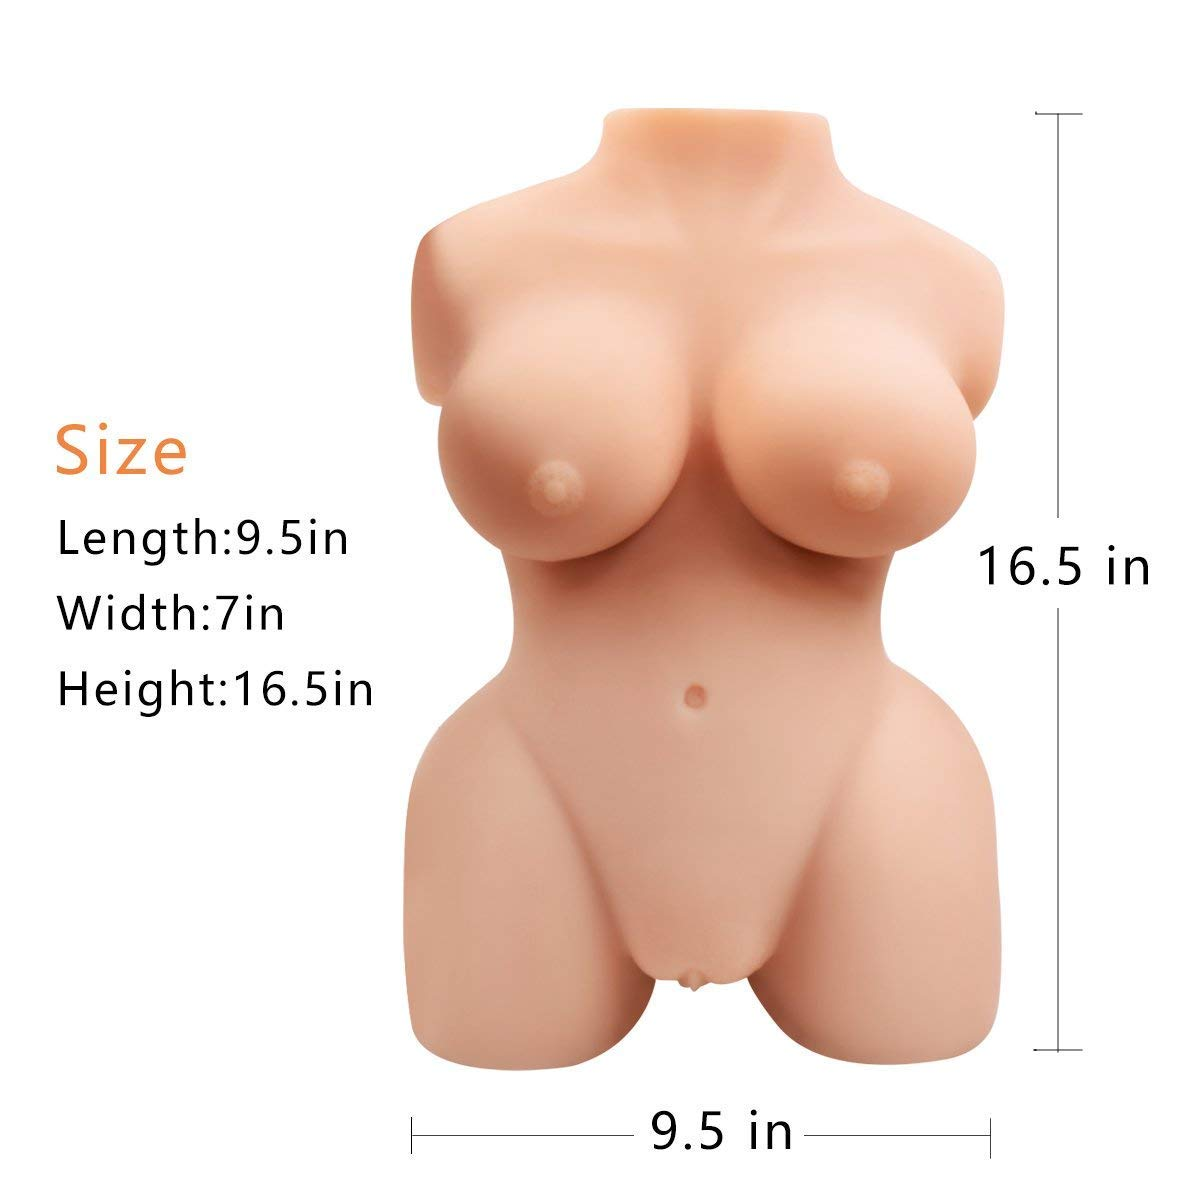 Realistic Lifelike Silicone Dolls - Super Real Smooth Soft Lifesize 3D Adult Toys for Men Male by BFFY (Image #7)